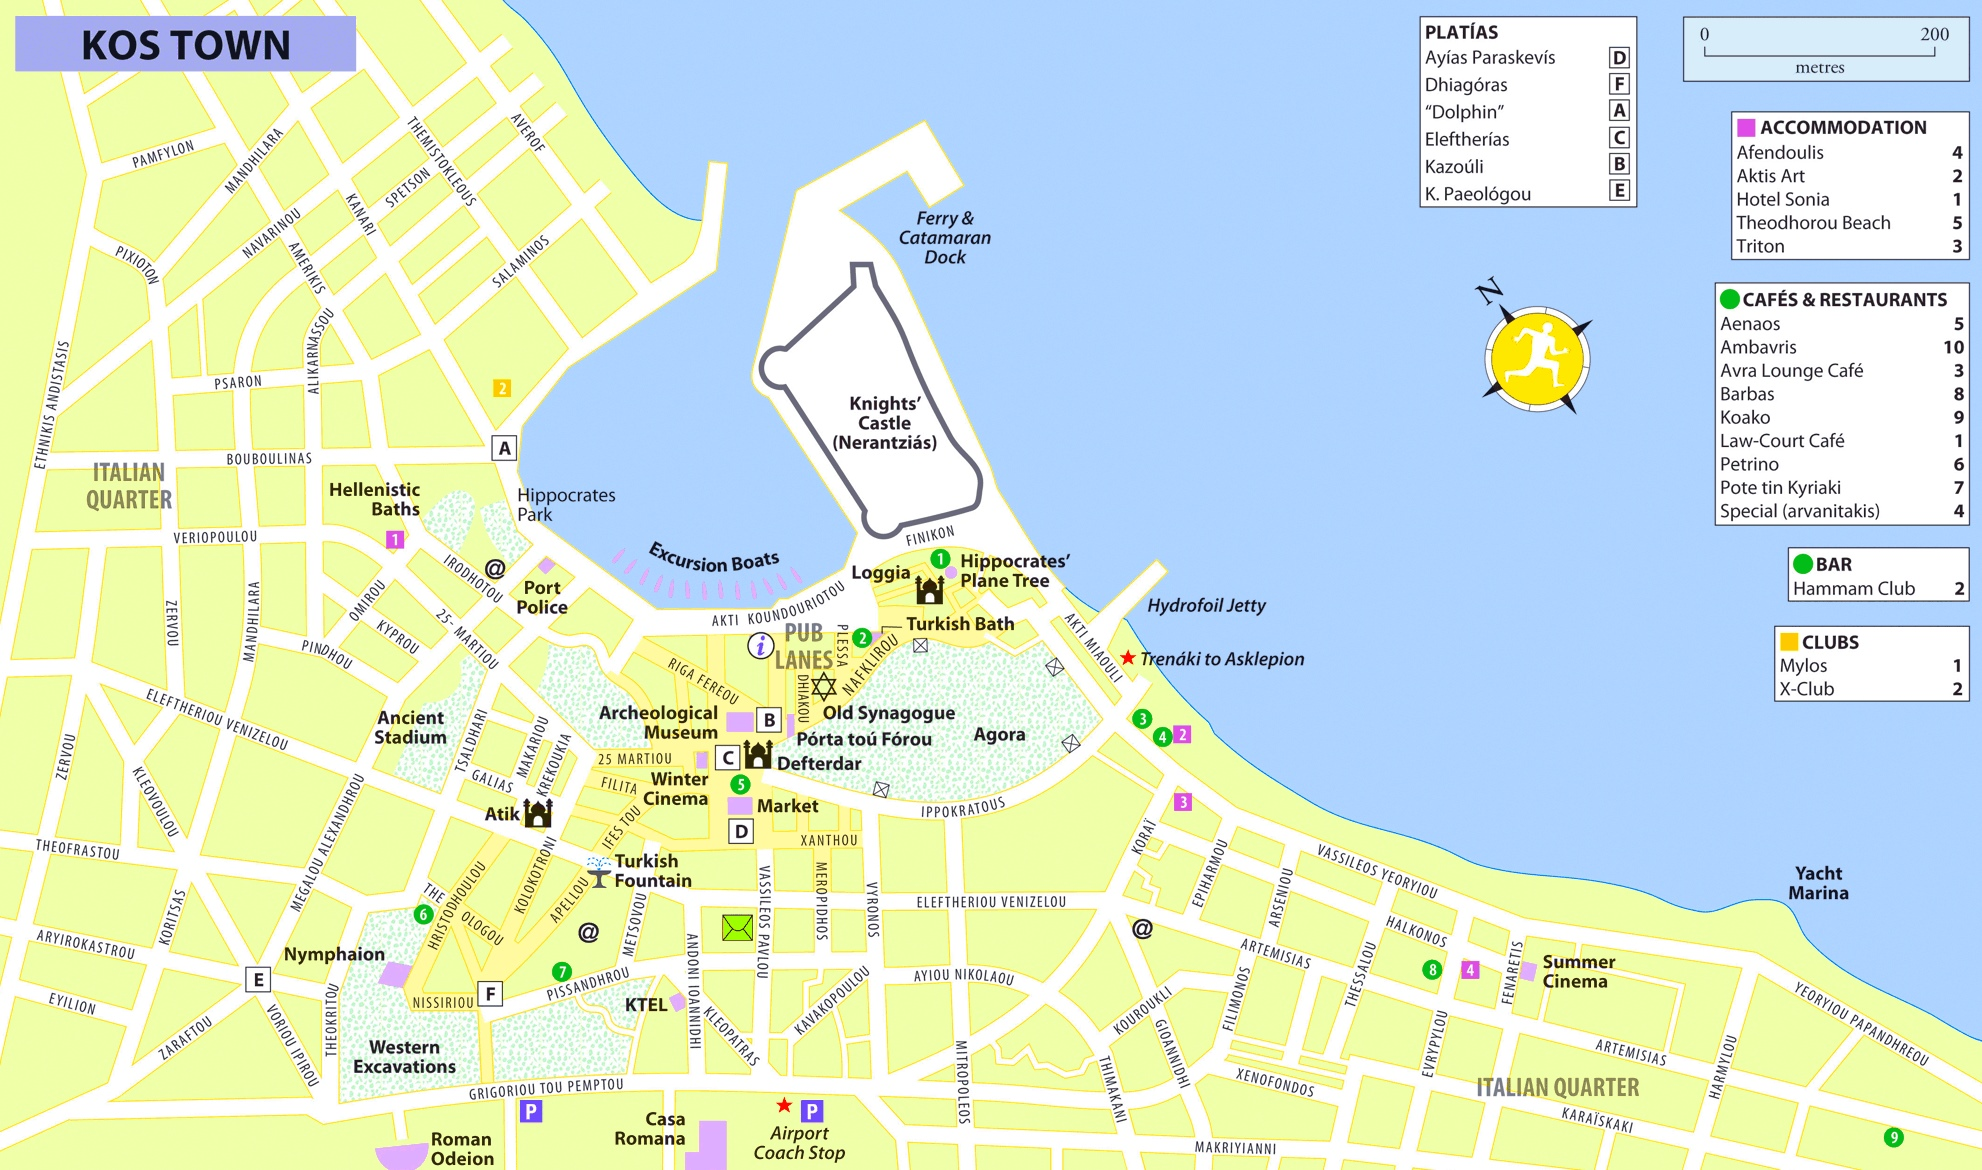 Kos City hotels and sightseeings map